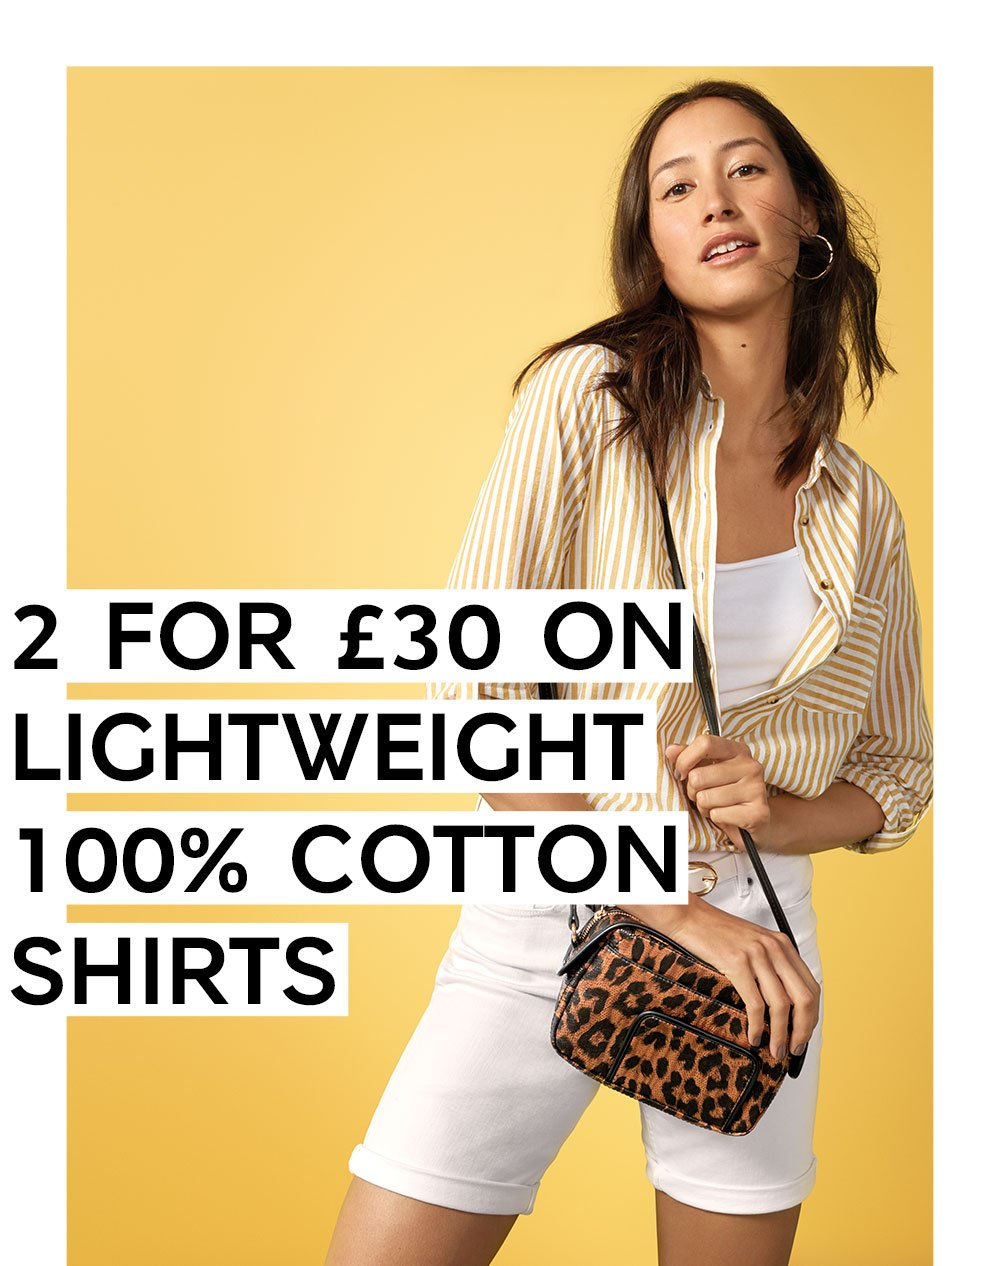 2 for £30 on lightweight 100% cotton shirts